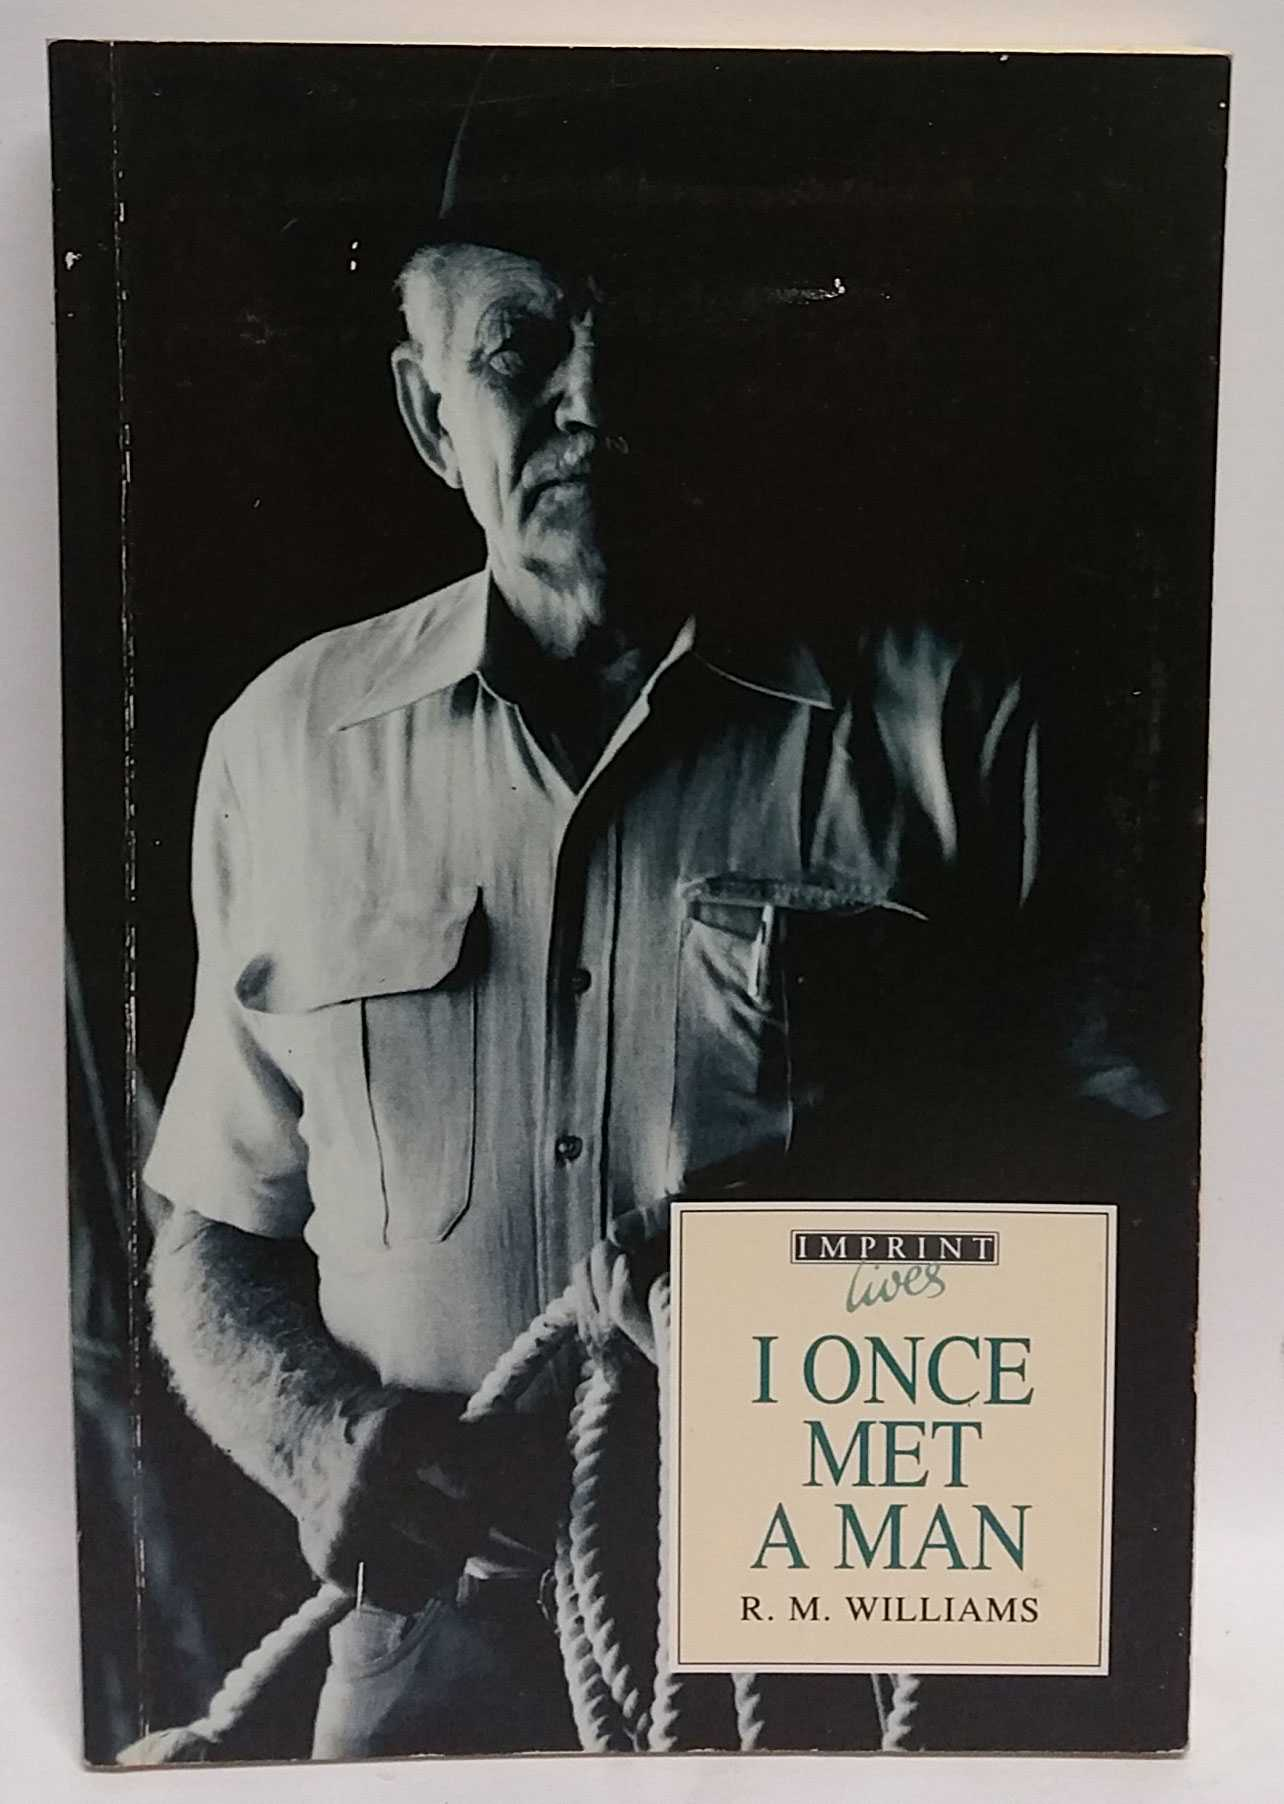 I Once Met A Man: True stories from one of Australia's greatest folk heroes, R. M. Williams